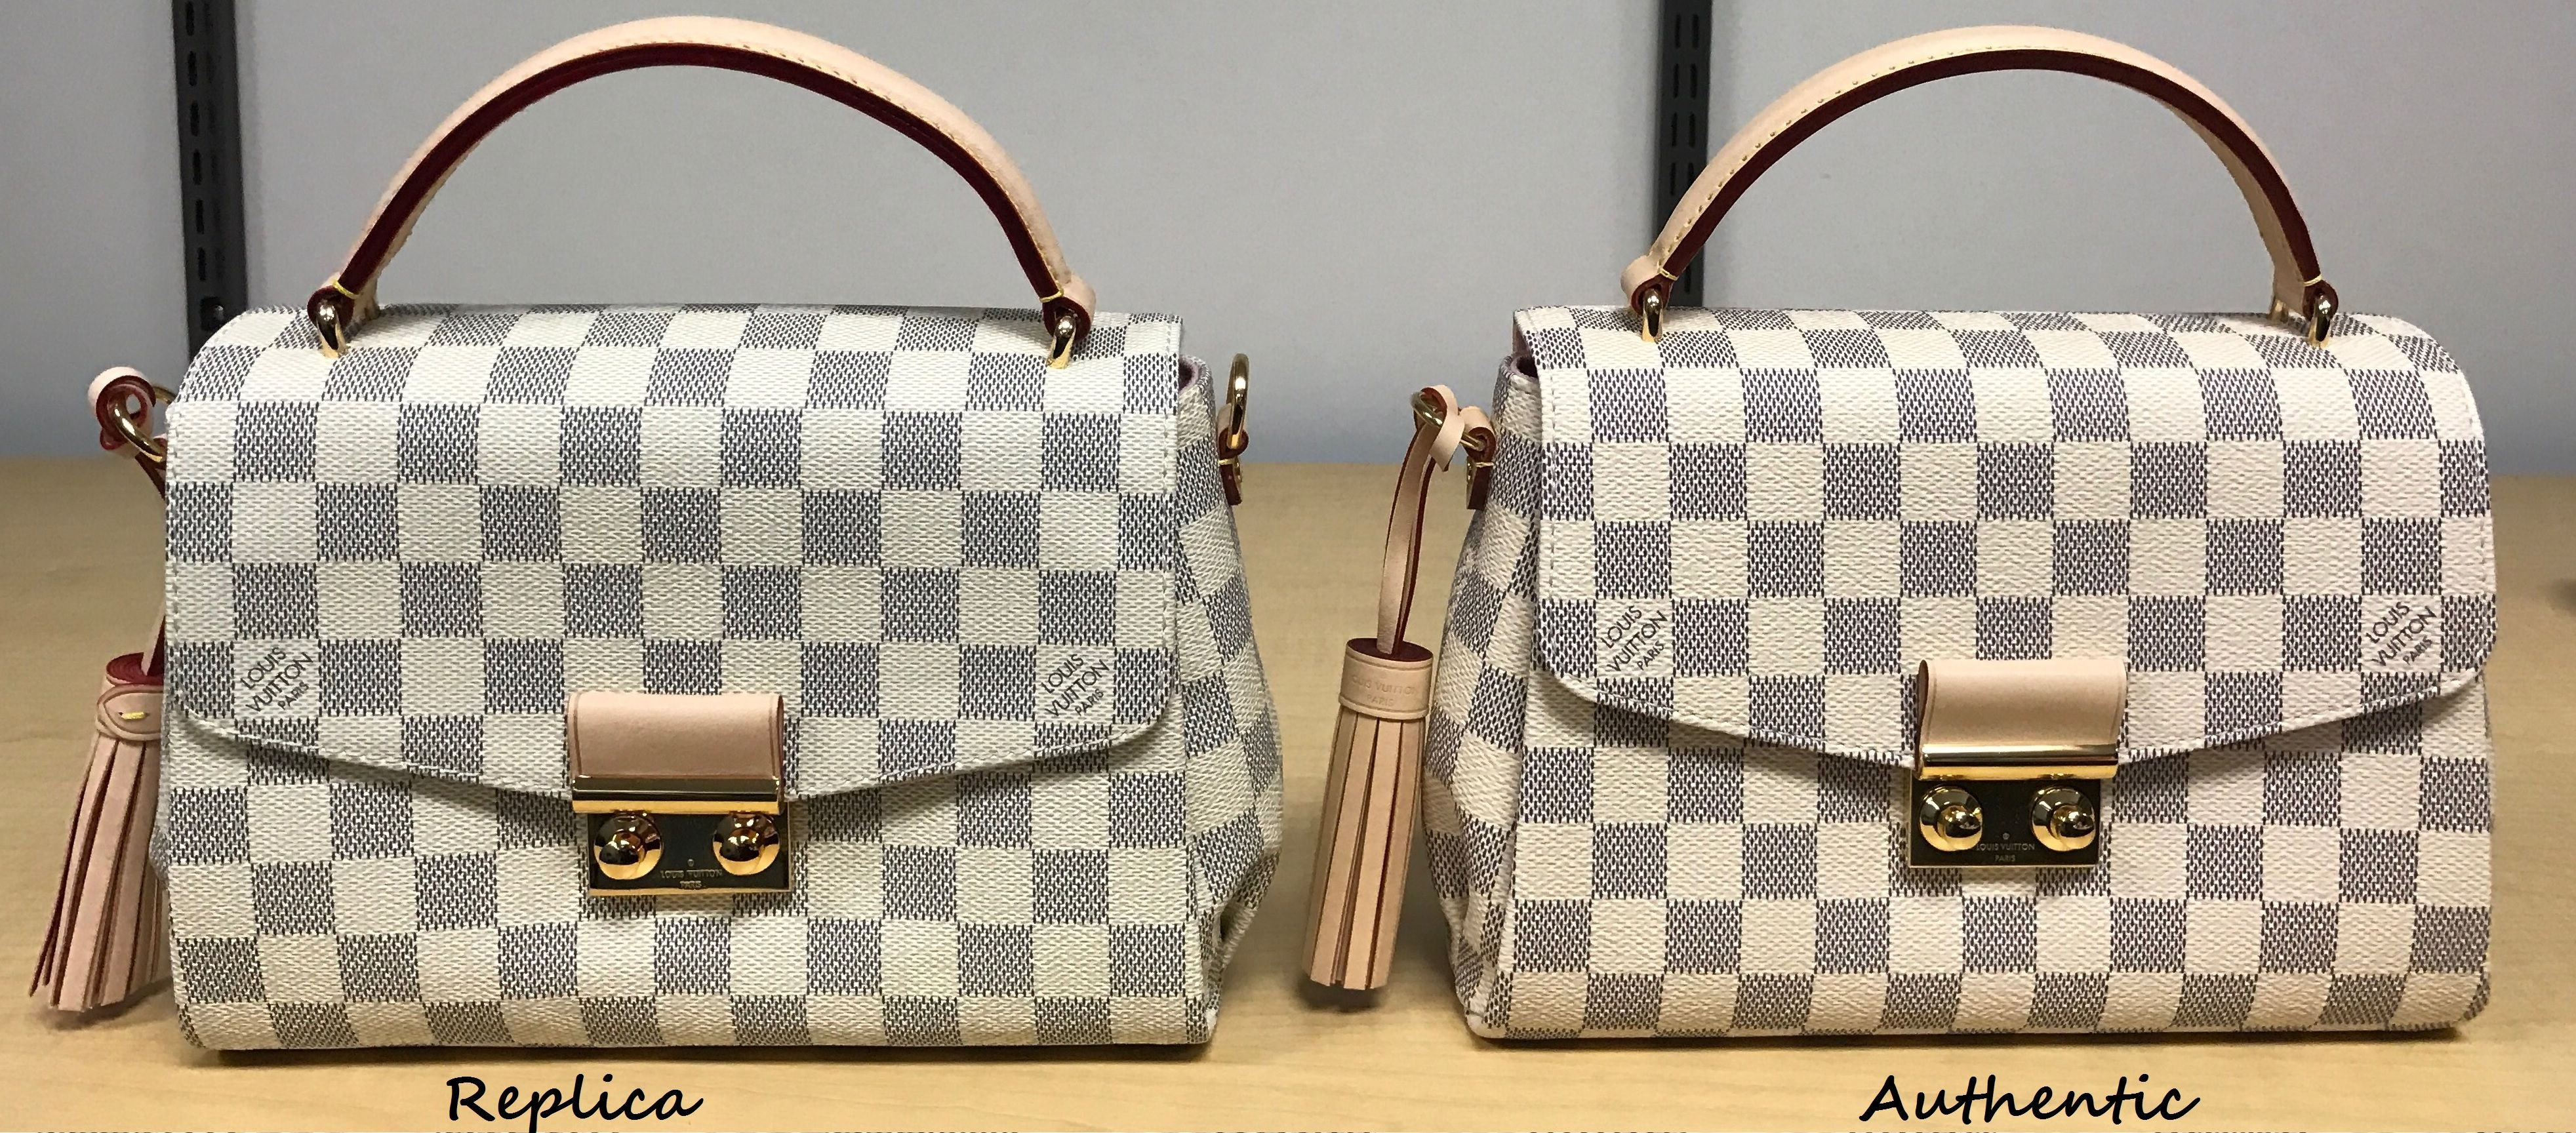 how to spot a fake louis vuitton croisette bag  a detailed review  u0026 side by side comparison